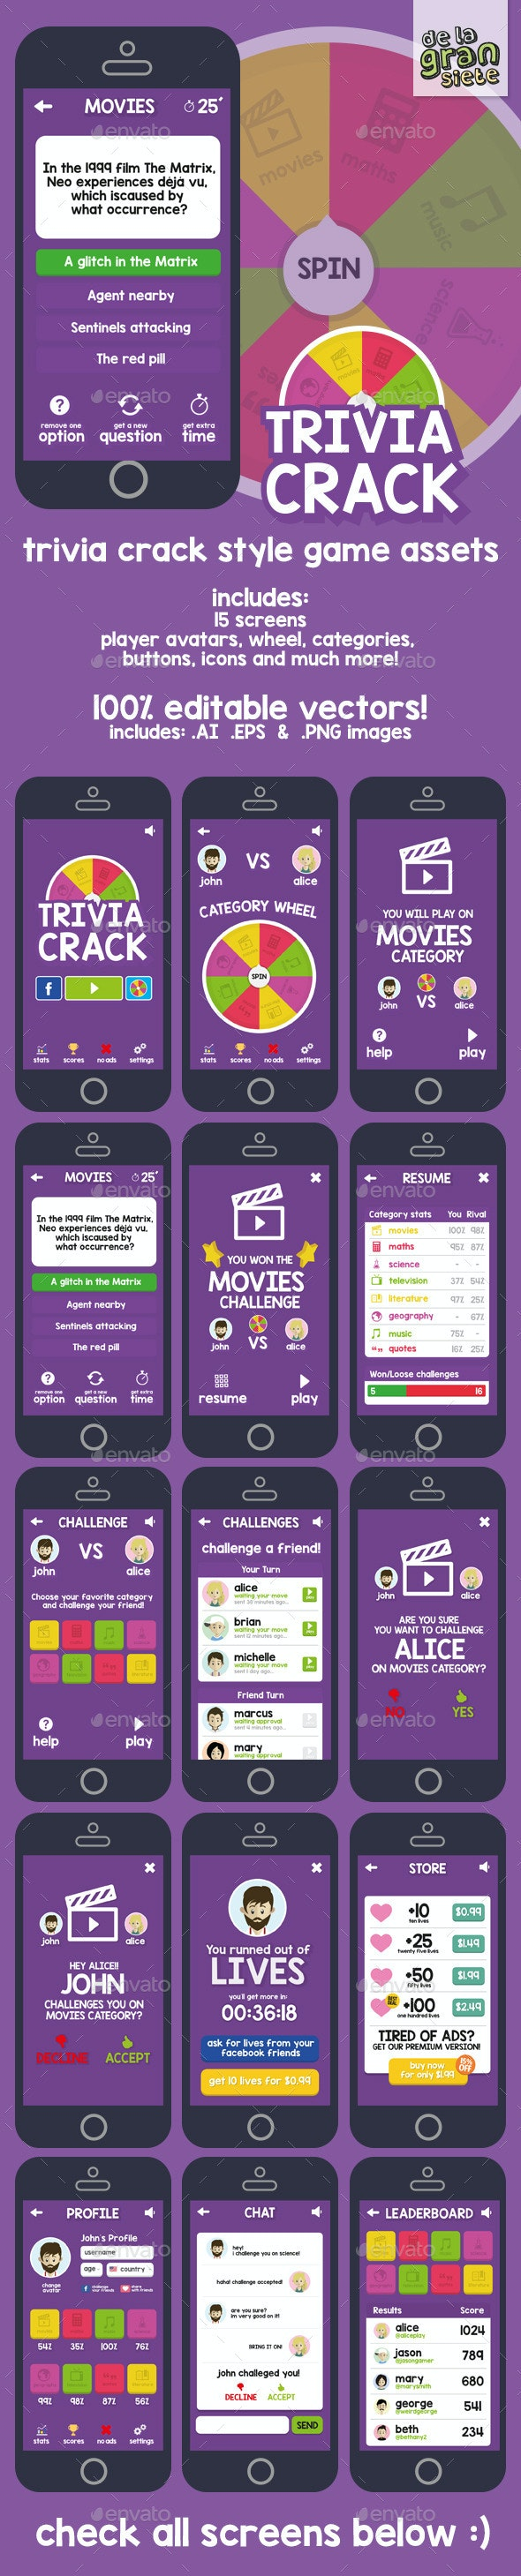 Trivia Crack Game Graphic Assets by DeLaGranSiete   GraphicRiver